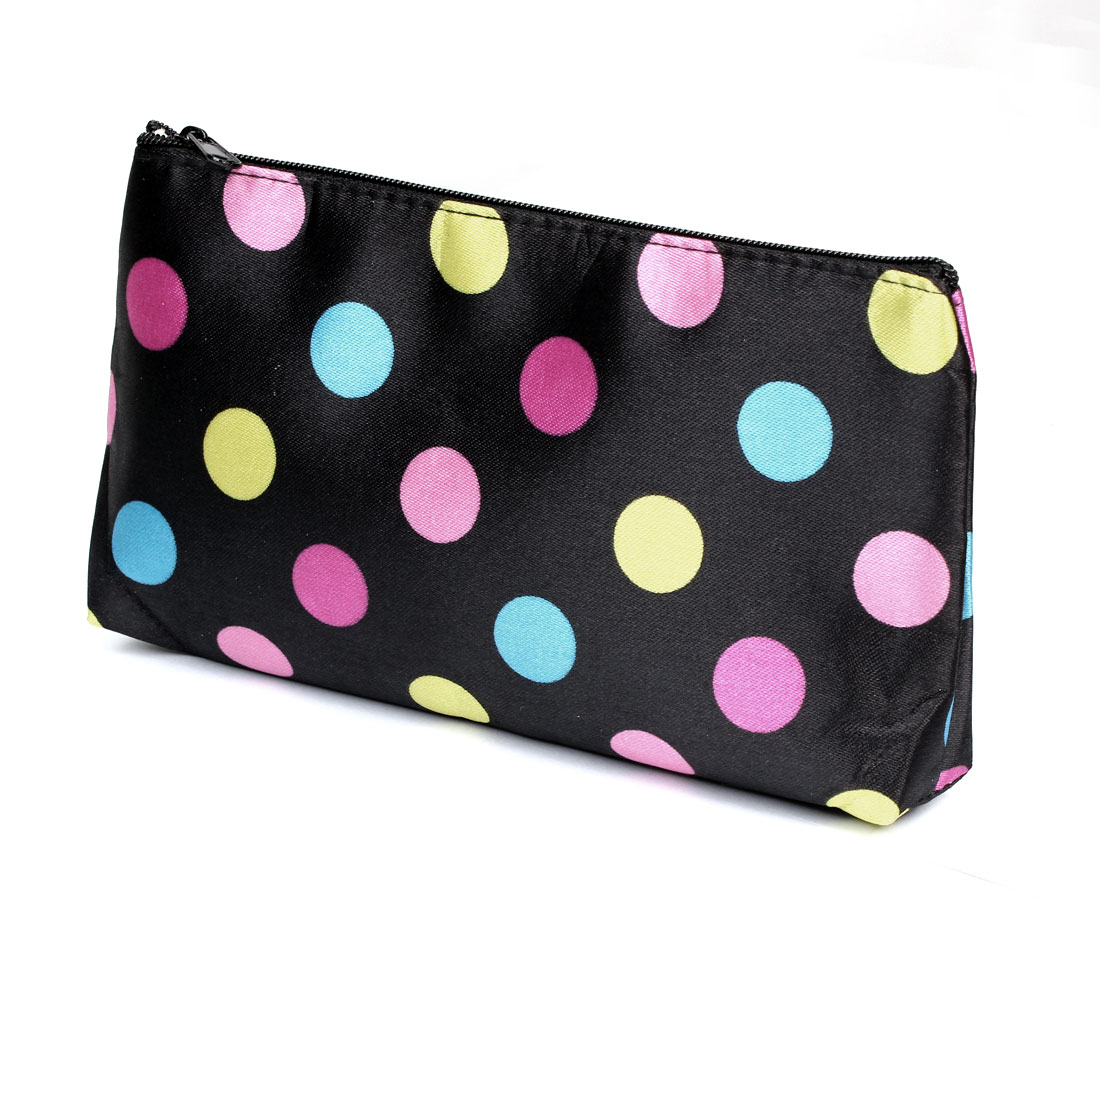 Ladies Colorful Dots Print Zip Up Makeup Cosmetic Pouch Bag Case Holder